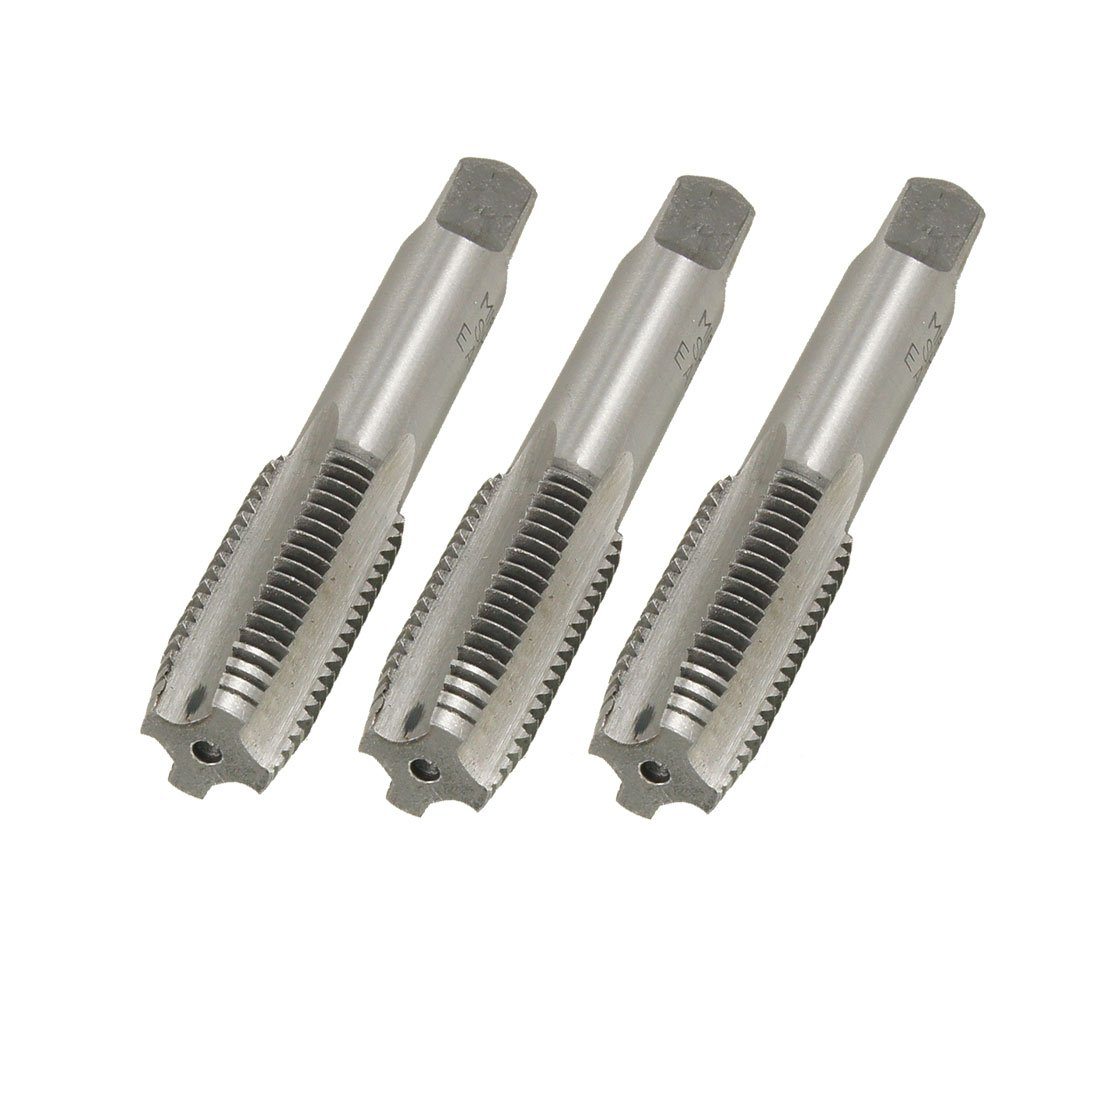 Uxcell a12091200ux0888 3 Pcs 16mm x 2.0mm Taper and